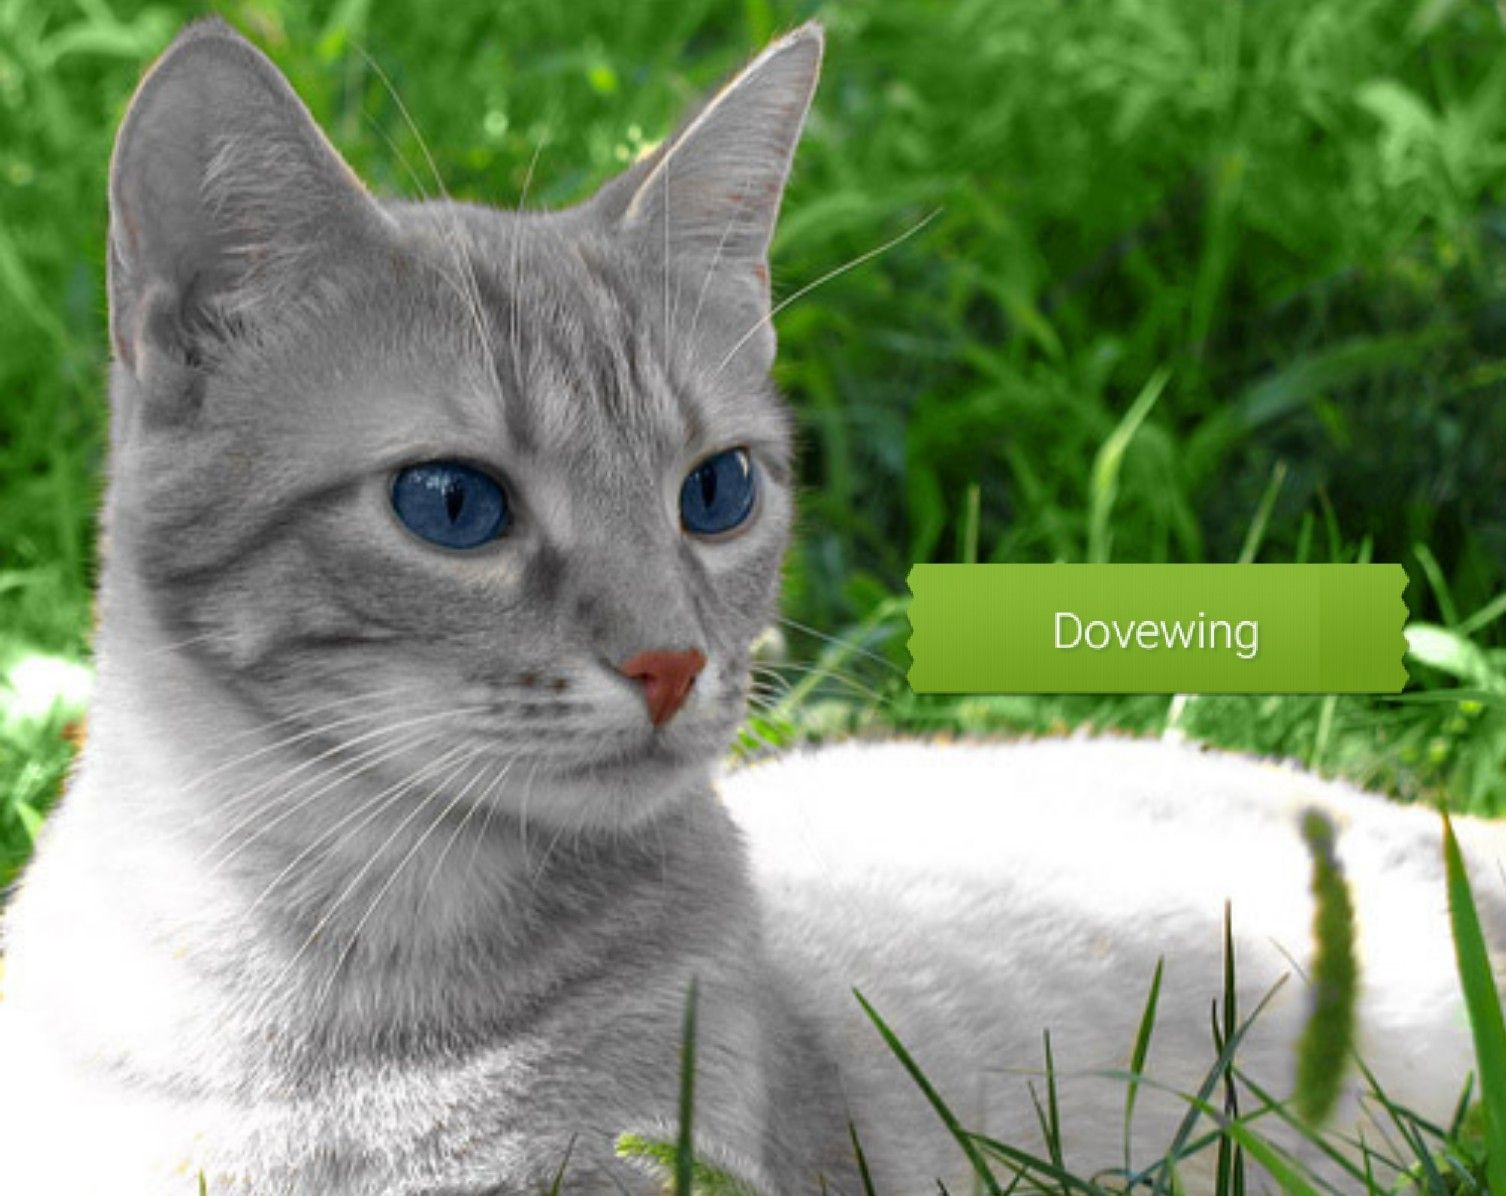 Dovewing With Images Grey Tabby Cats Tabby Cat Silver Tabby Cat